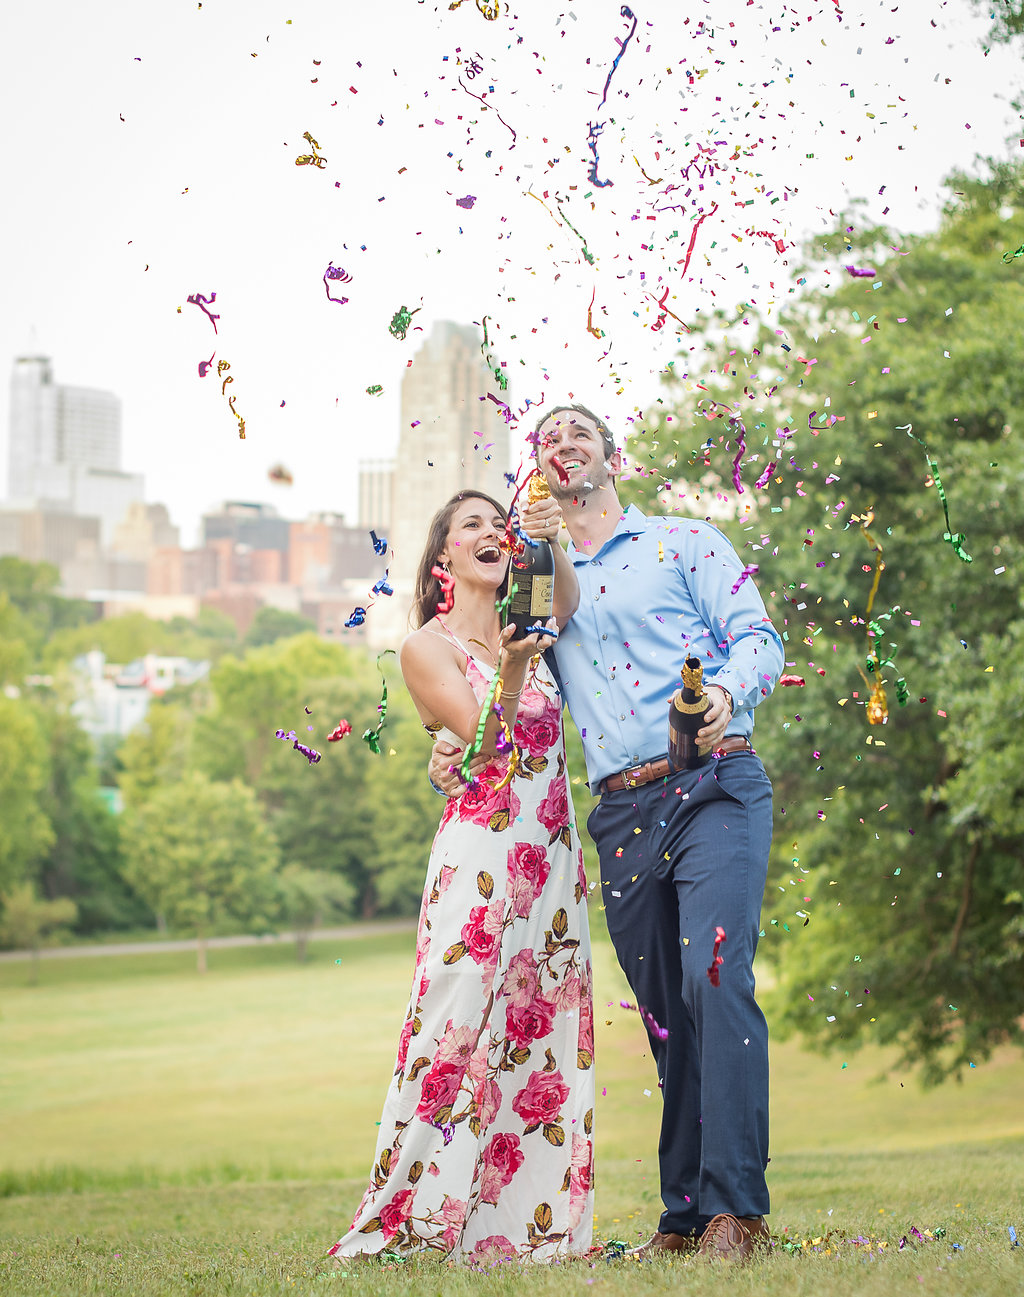 Confetti Engagement Photos in Raleigh NC.jpg